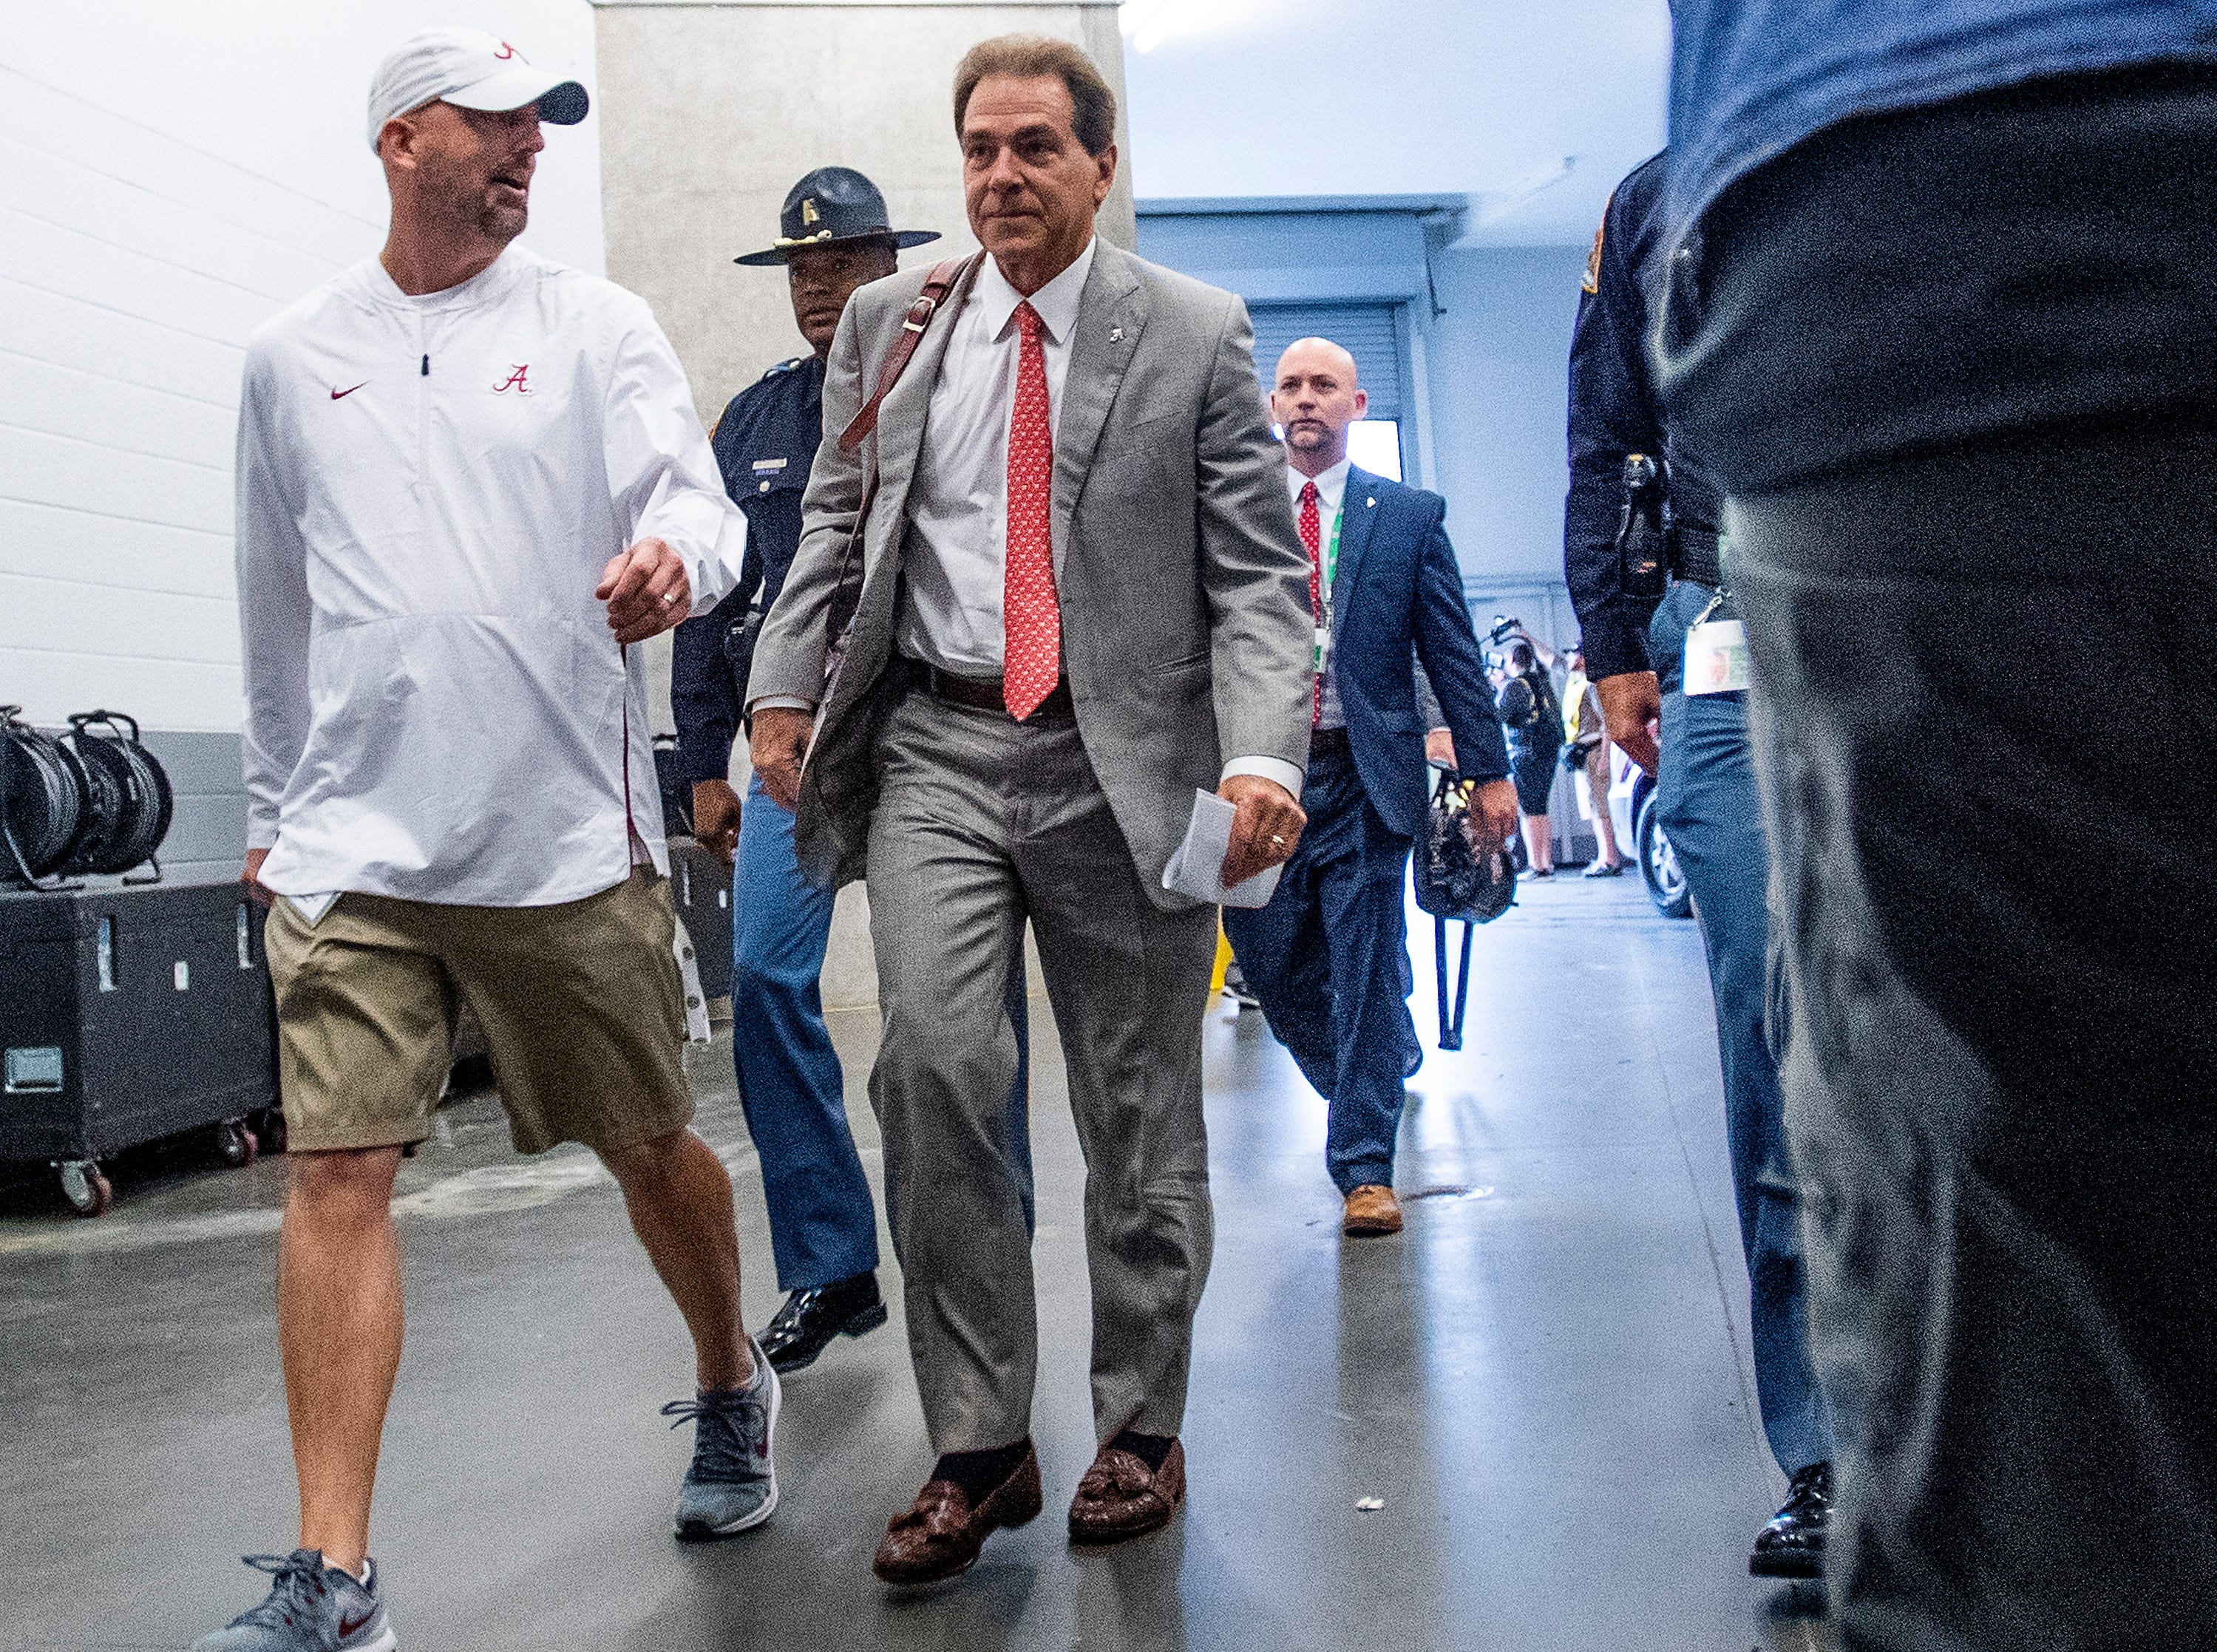 Alabama head coach Nick Saban arrives with the team before the SEC Championship Game at Mercedes Benz Stadium in Atlanta, Ga., on Saturday December 1, 2018.